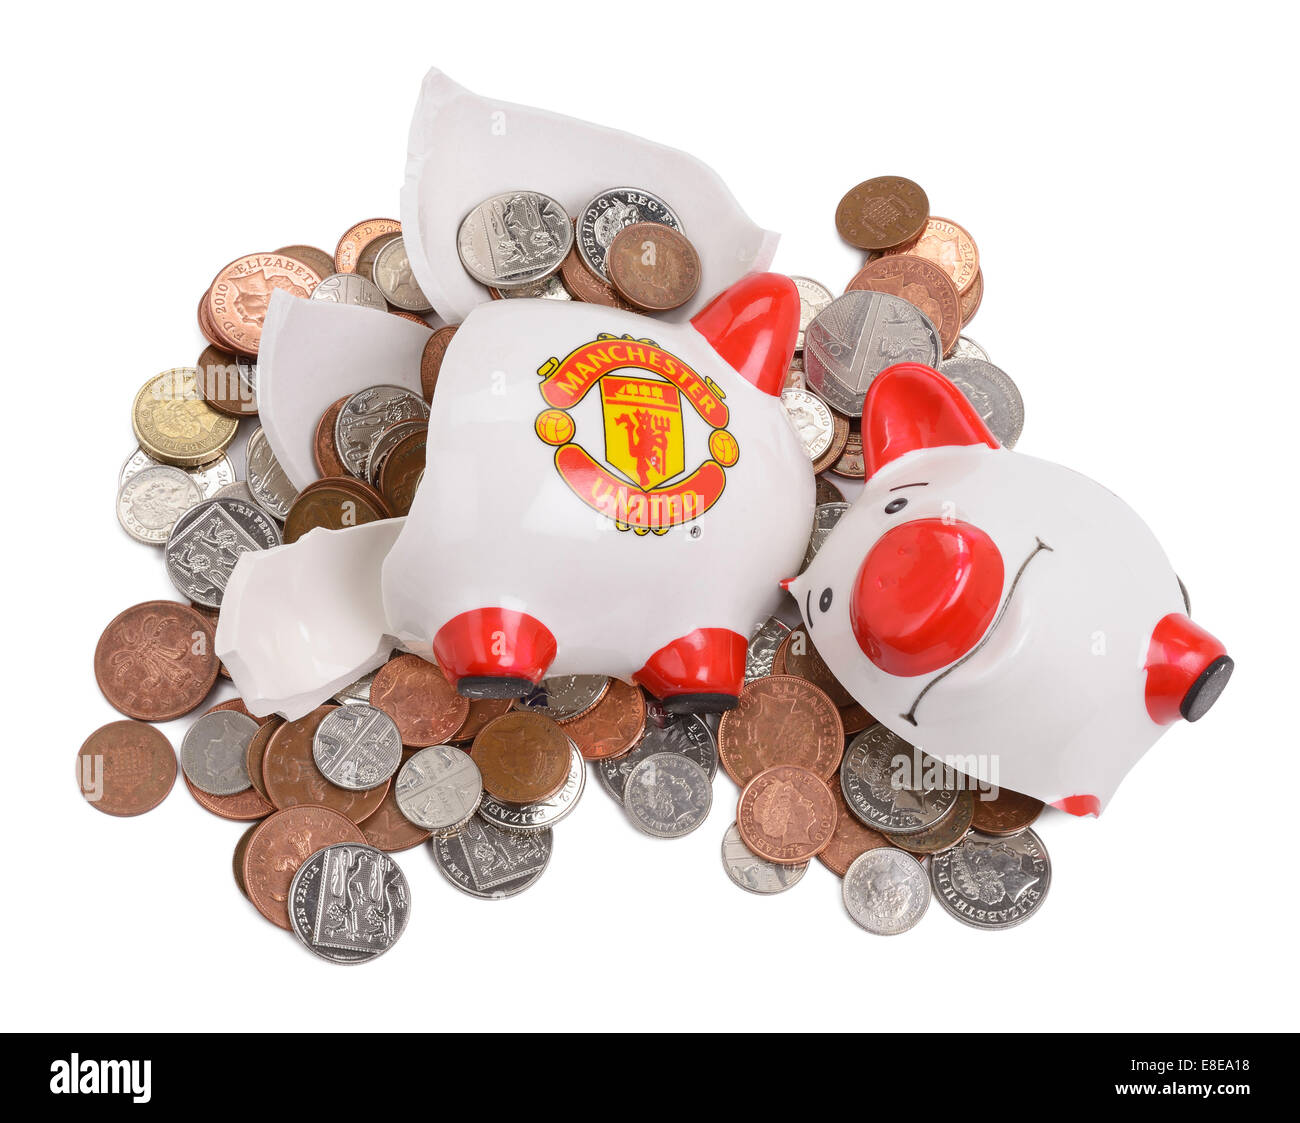 Smashed and broken Manchester United Football Club piggy bank - Stock Image